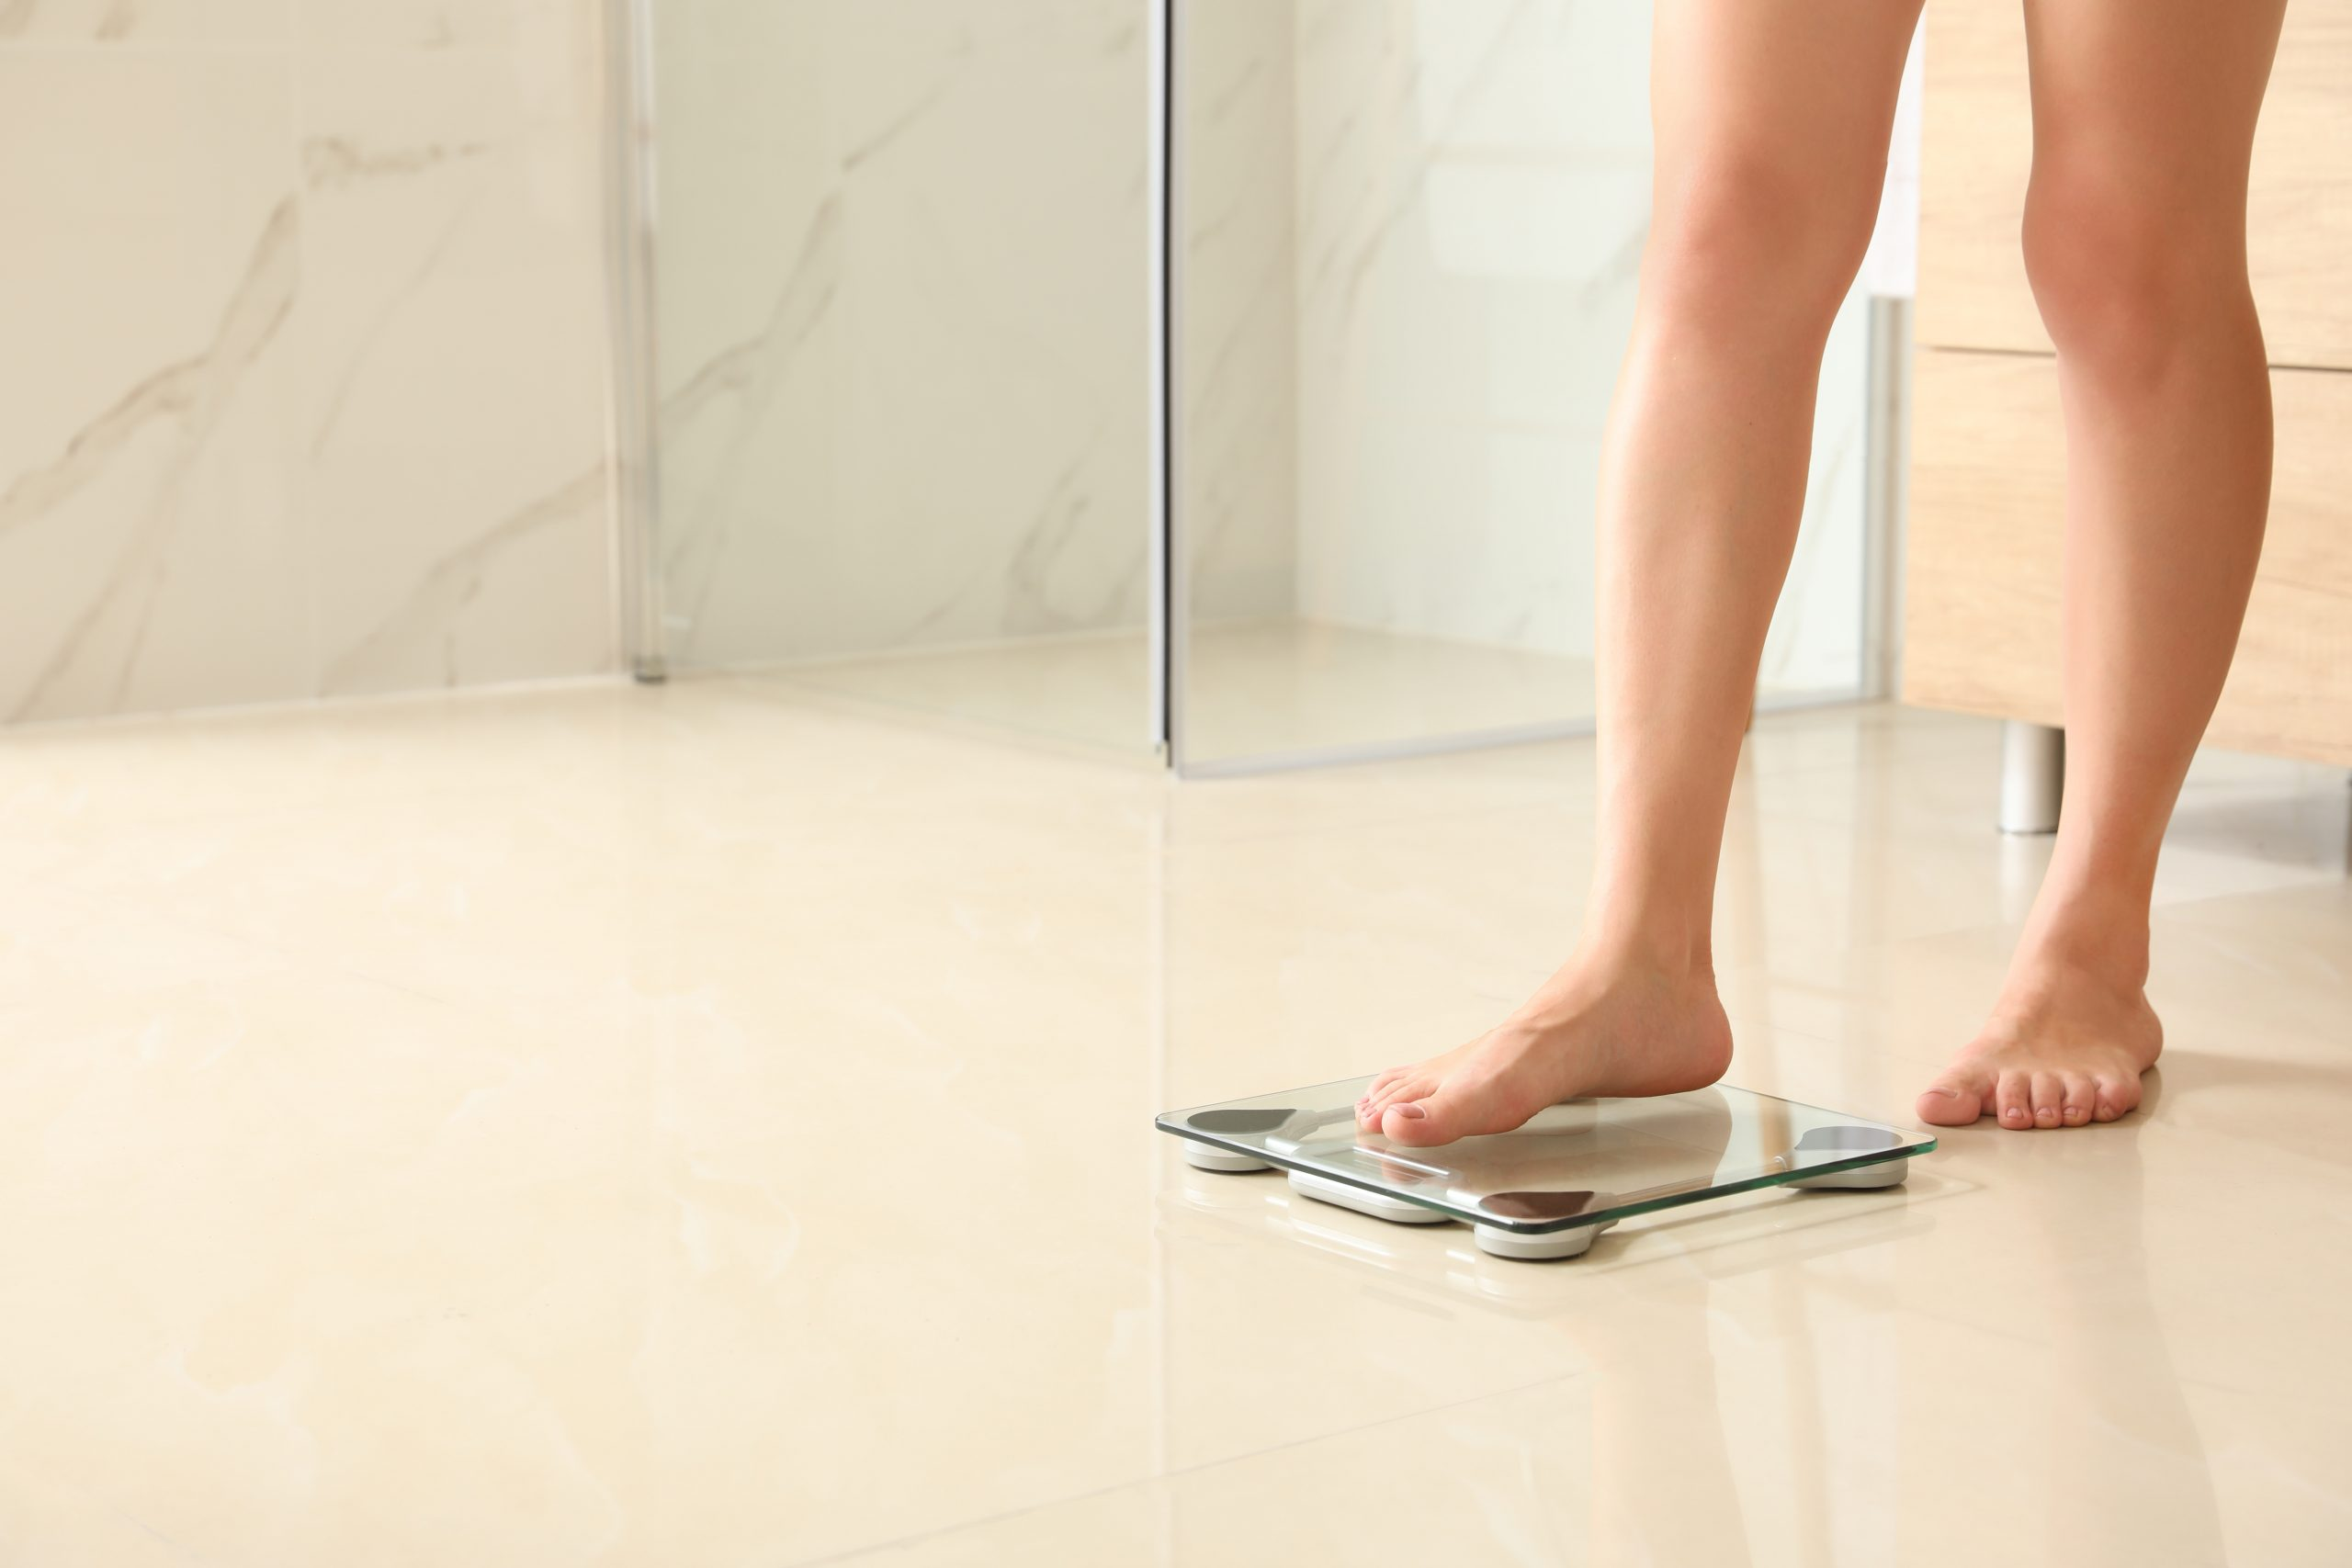 Symbol Weight Management Programming: Woman steps on scale at home